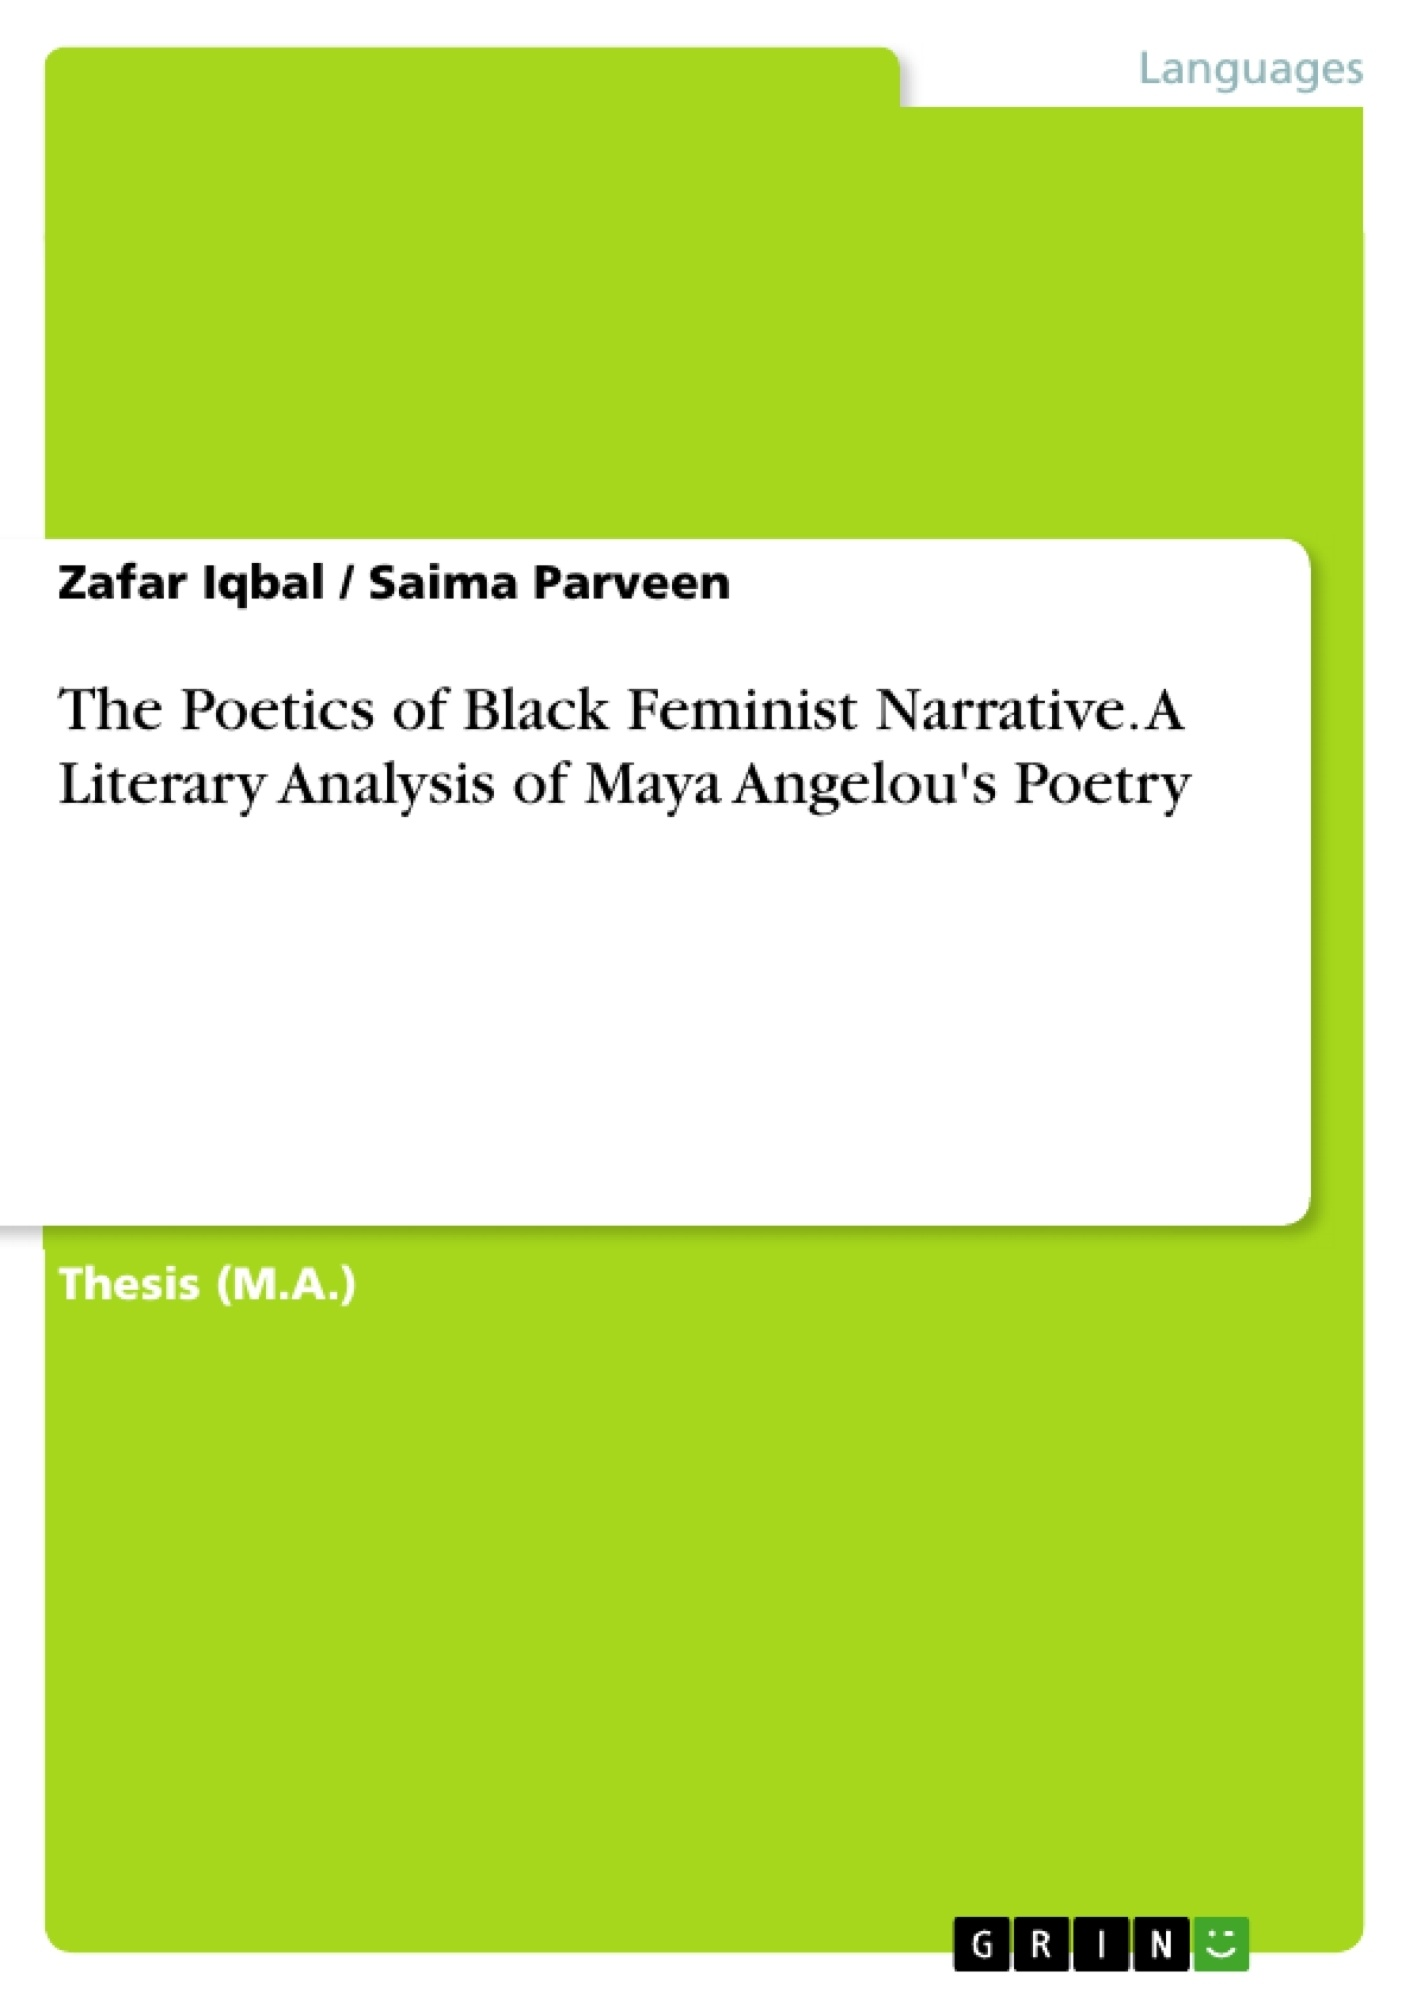 Title: The Poetics of Black Feminist Narrative. A Literary Analysis of Maya Angelou's Poetry